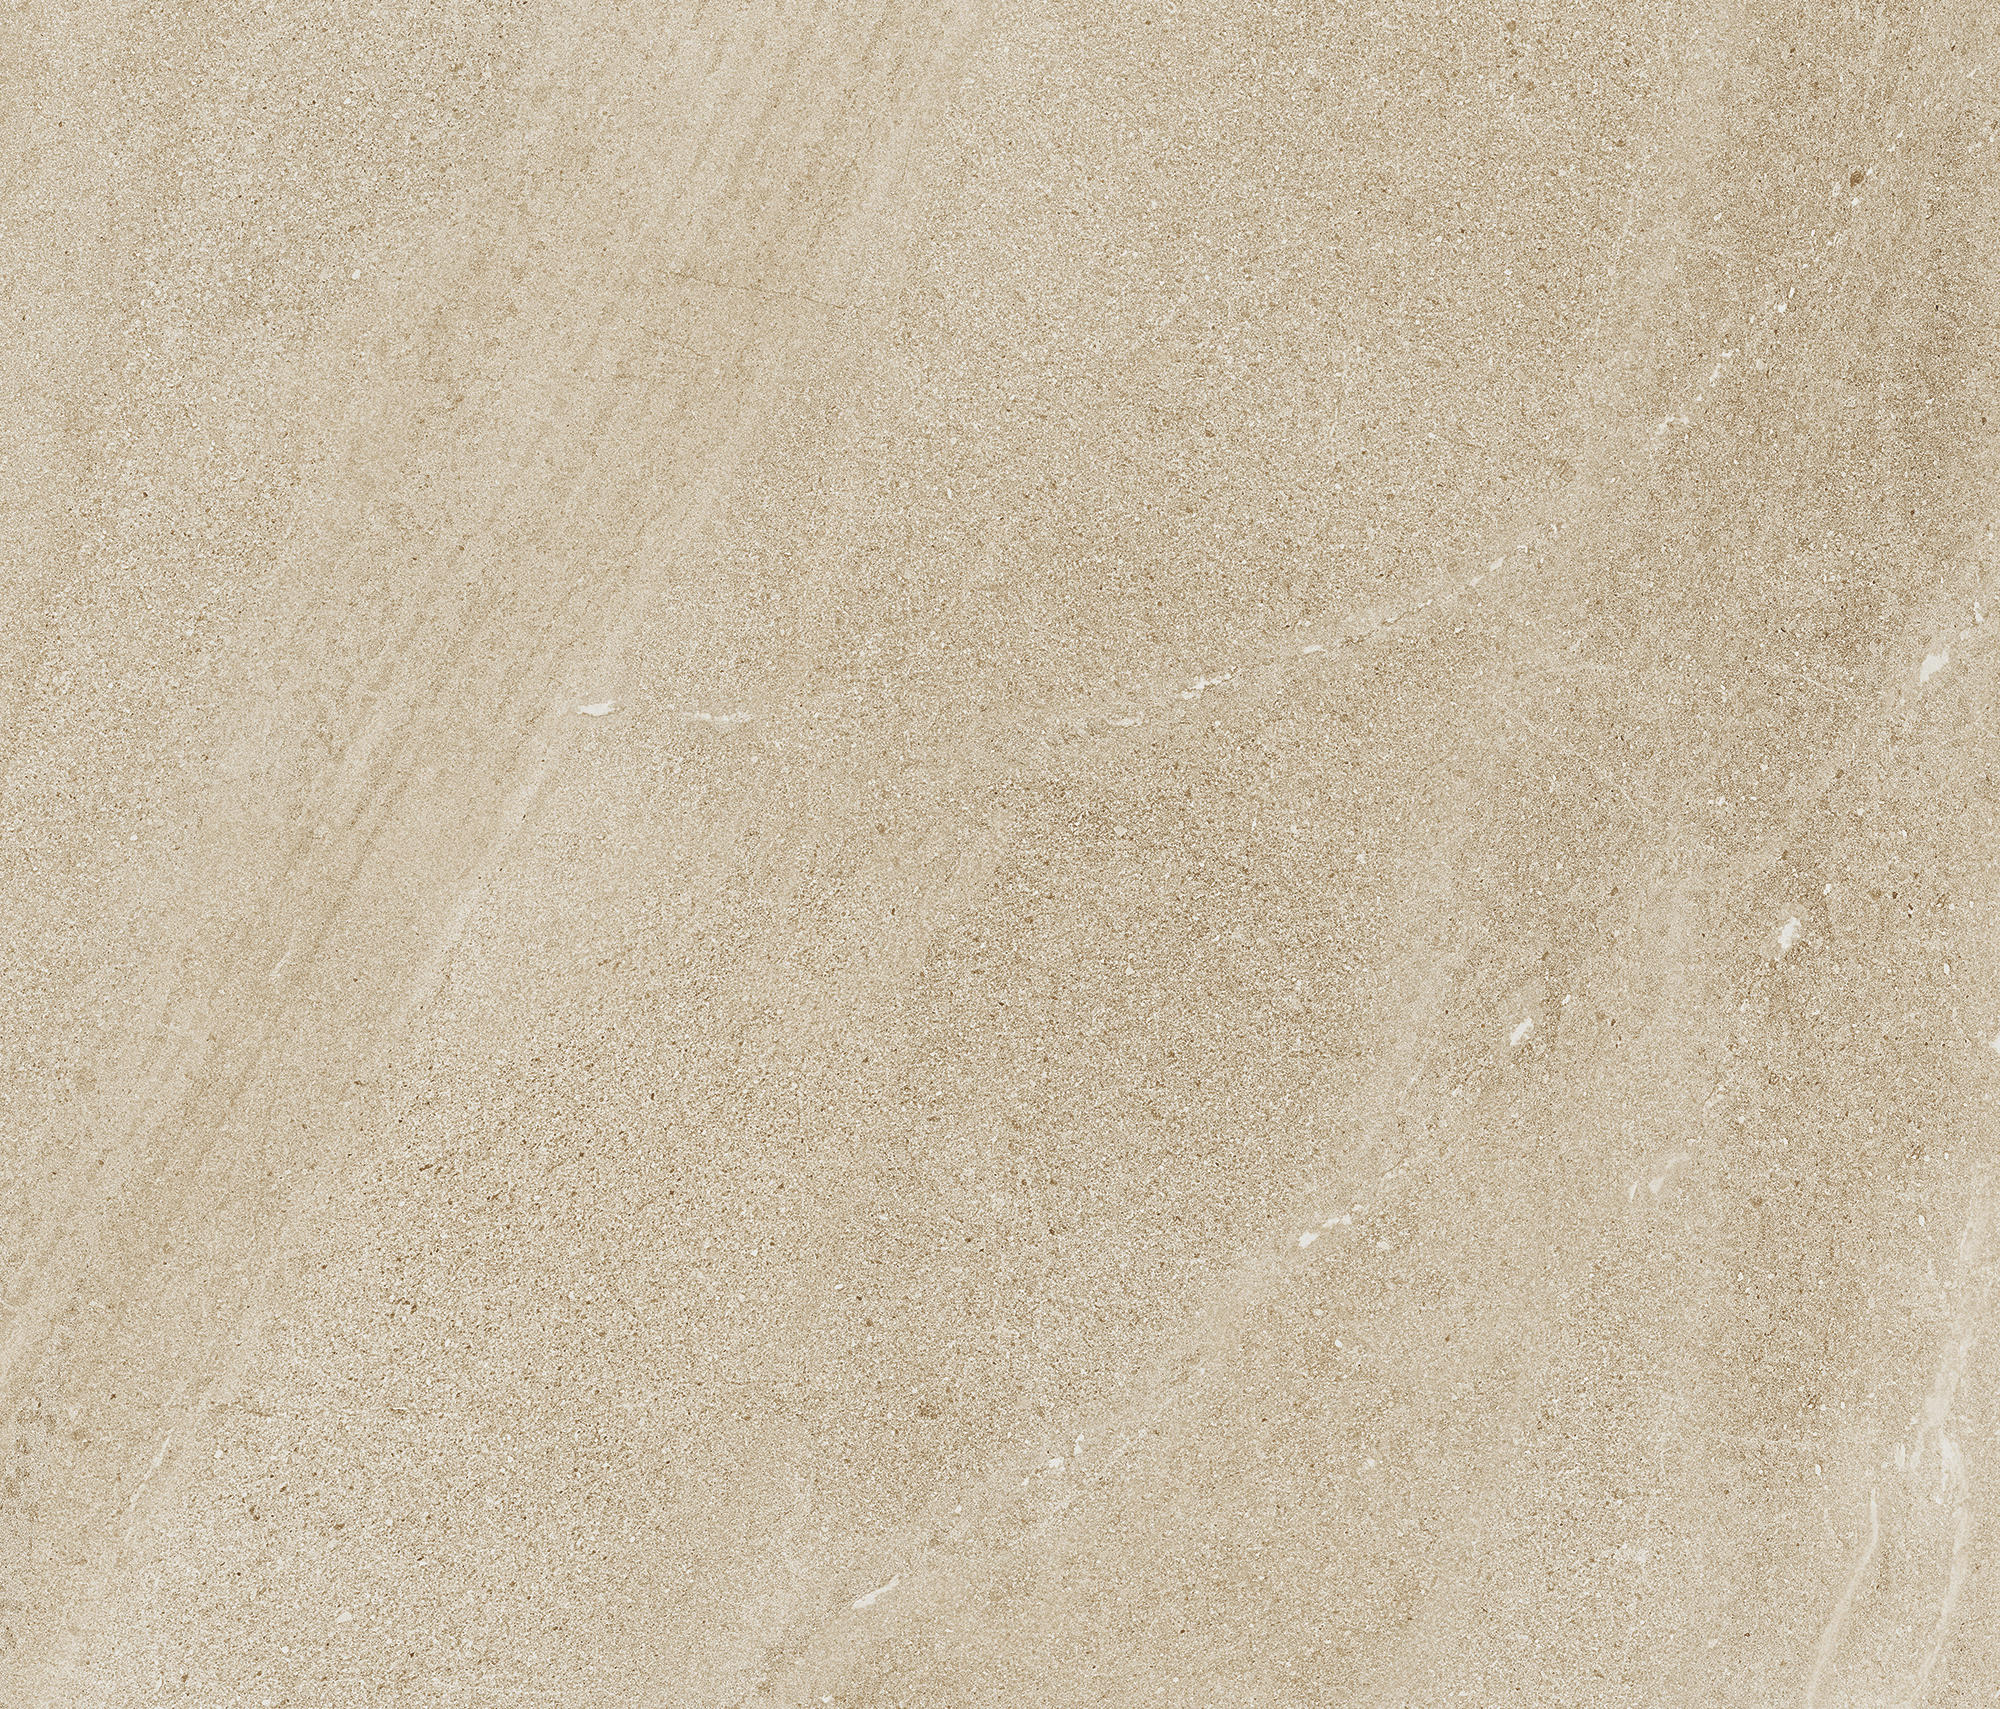 LIMESTONE | AMBER - Floor tiles from Cotto d\'Este | Architonic